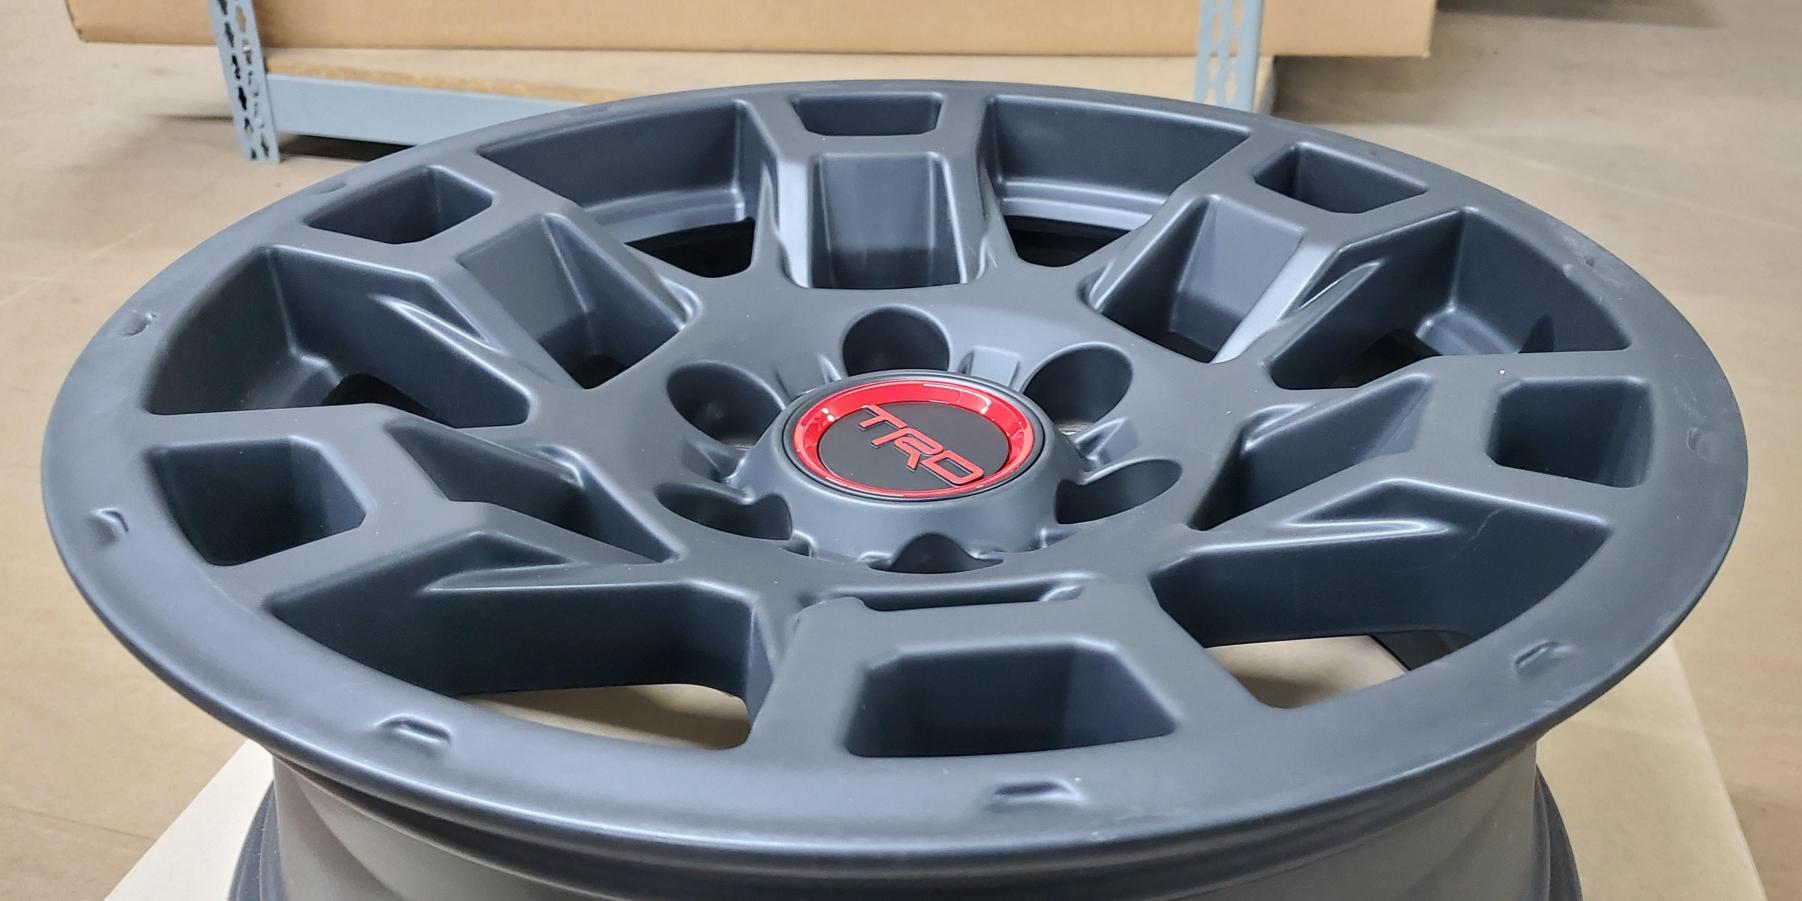 Pictures Of The New 2021 Trd Pro Wheels Toyota 4runner Forum Largest 4runner Forum